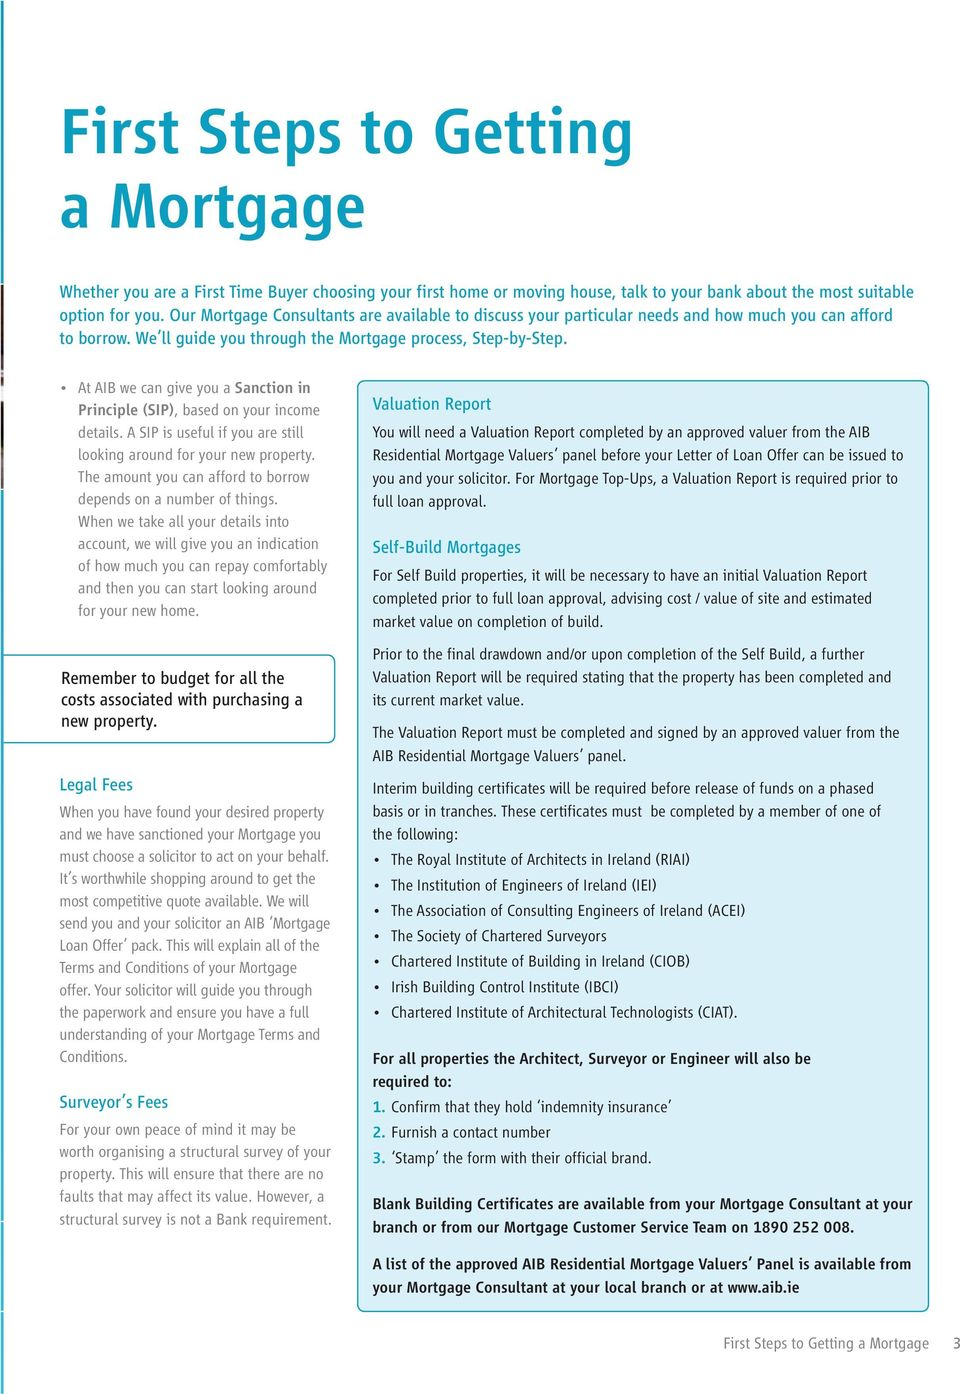 First Steps to Getting a Mortgage for Owner Occupiers - PDF